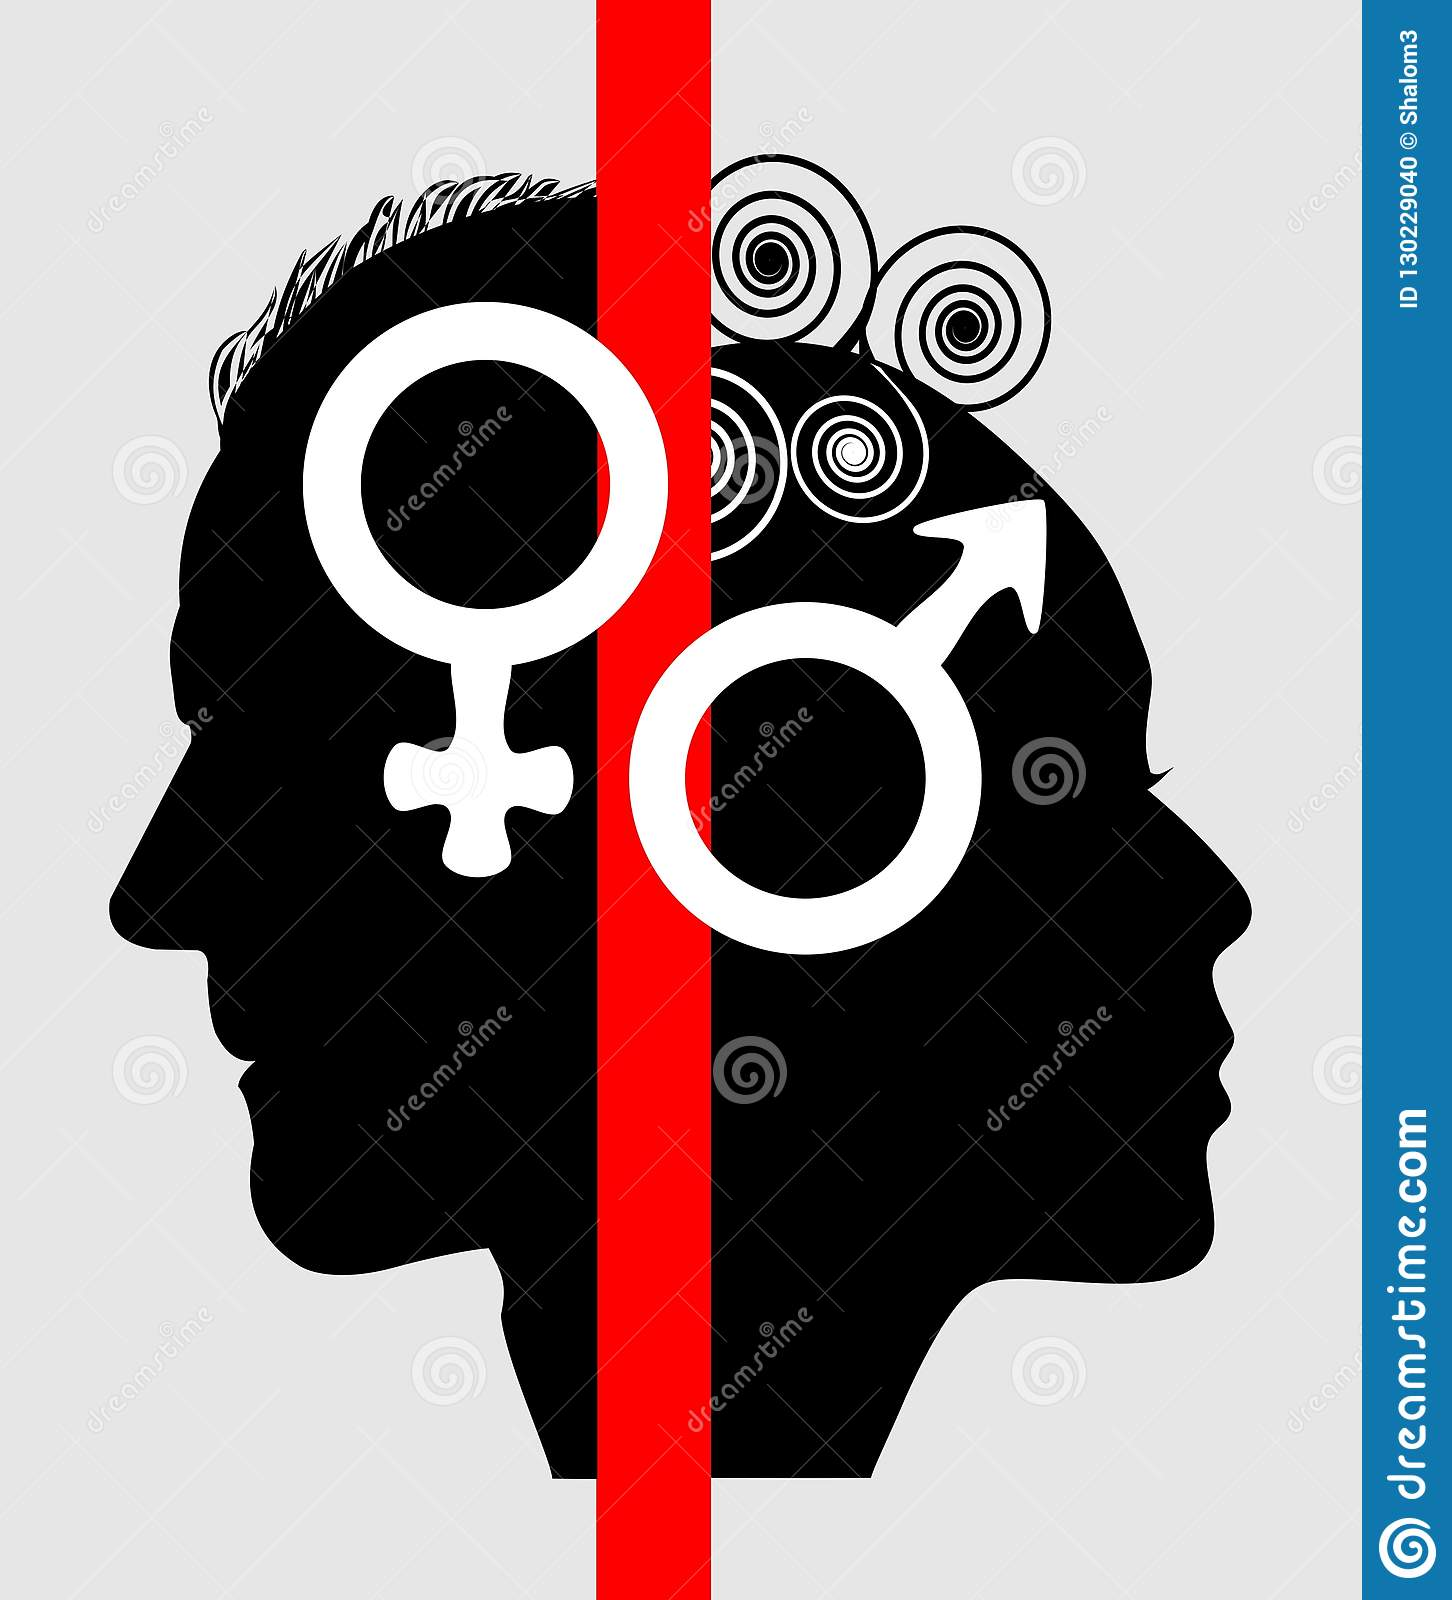 Half Face Profile Of A Woman And A Man Symbols For The Sex